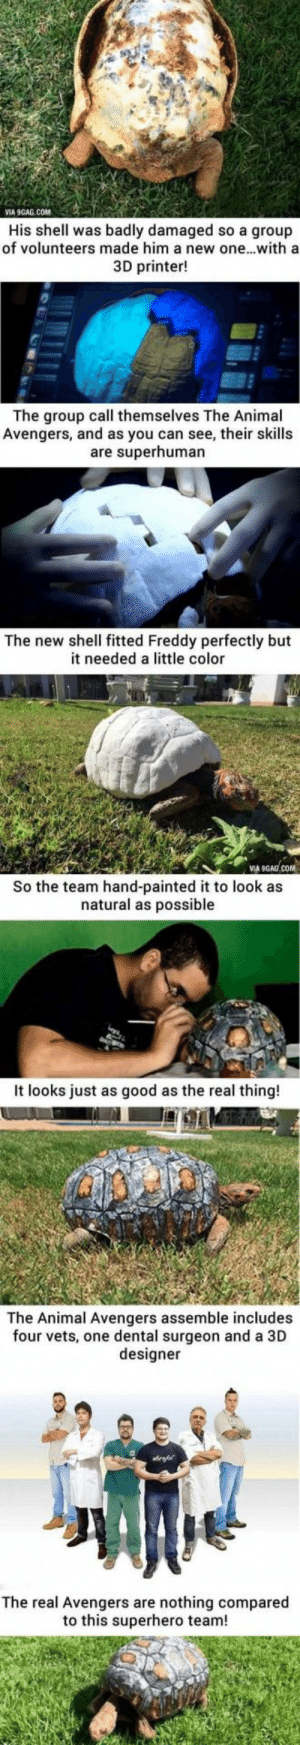 9gag, Superhero, and Animal: VIA 9GAG.COM  His shell was badly damaged so a group  of volunteers made him a new one...witha  3D printer!  The group call themselves The Animal  Avengers, and as you can see, their skills  are superhuman  The new shell fitted Freddy perfectly but  it needed a little color  VIA  COM  So the team hand-painted it to look as  natural as possible  It looks just as good as the real thing!  The Animal Avengers assemble includes  four vets, one dental surgeon and a 3D  designer  The real Avengers are nothing compared  to this superhero team! Freddy the turtle ☺️